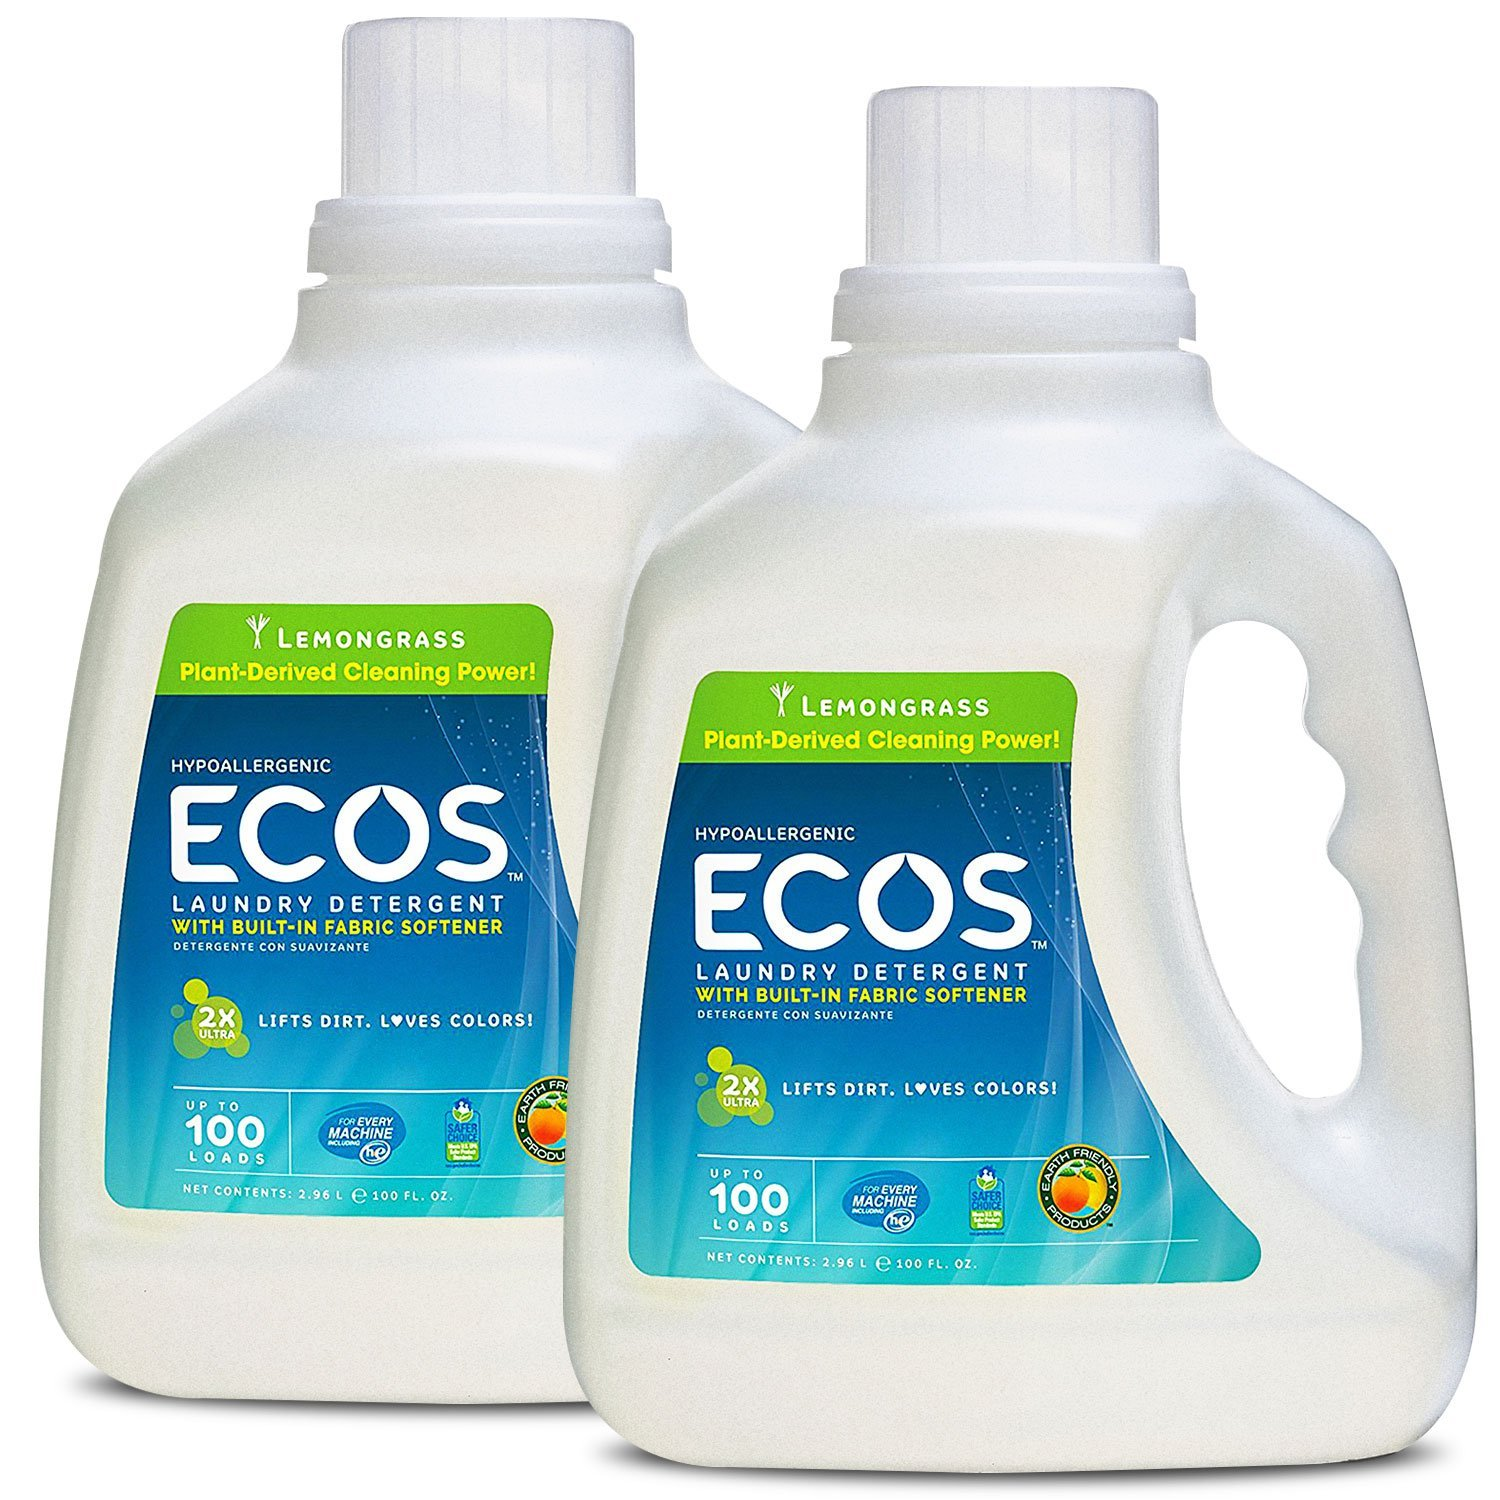 Earth Friendly Products ECOS 2X Liquid Laundry Detergent with Built in Softener, Lemongrass, 200 Loads, 2 x 100 oz Bottles by Earth Friendly Products